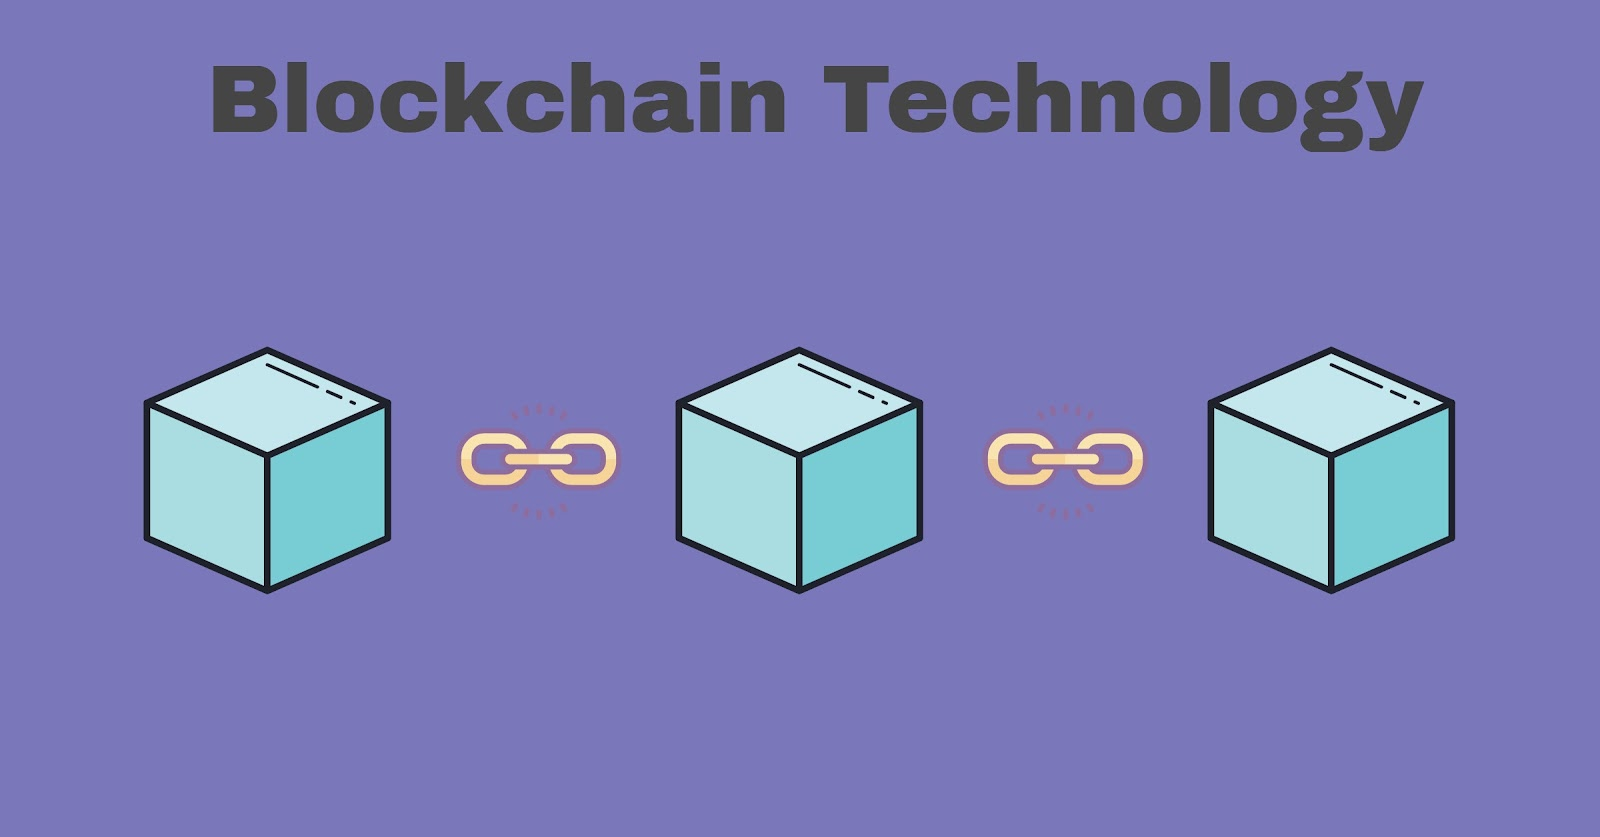 a simplified diagram of blockchain technology, representing the blocks and chains.